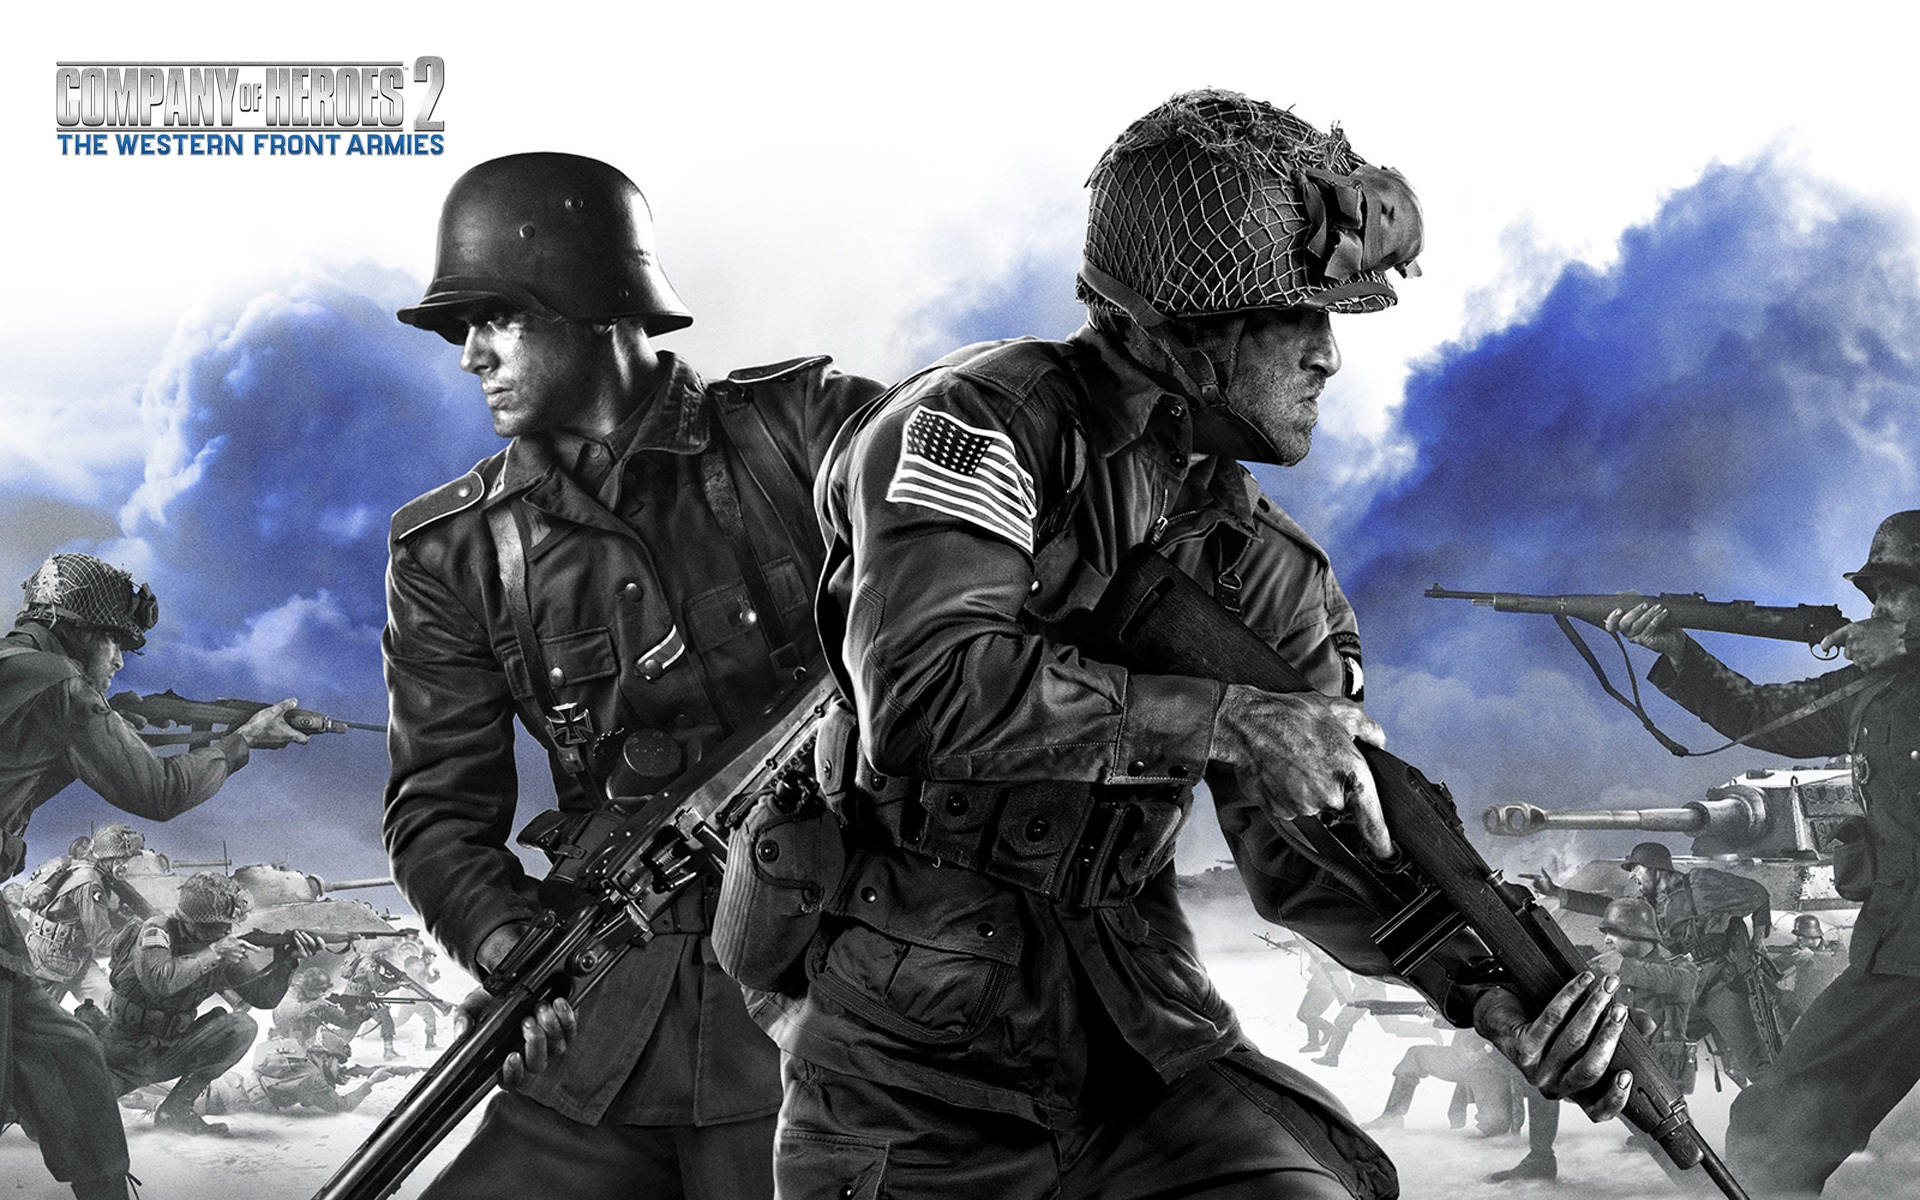 Wallpaper Company Of Heroes 2 Game Hd 1920x1200 Hd Picture